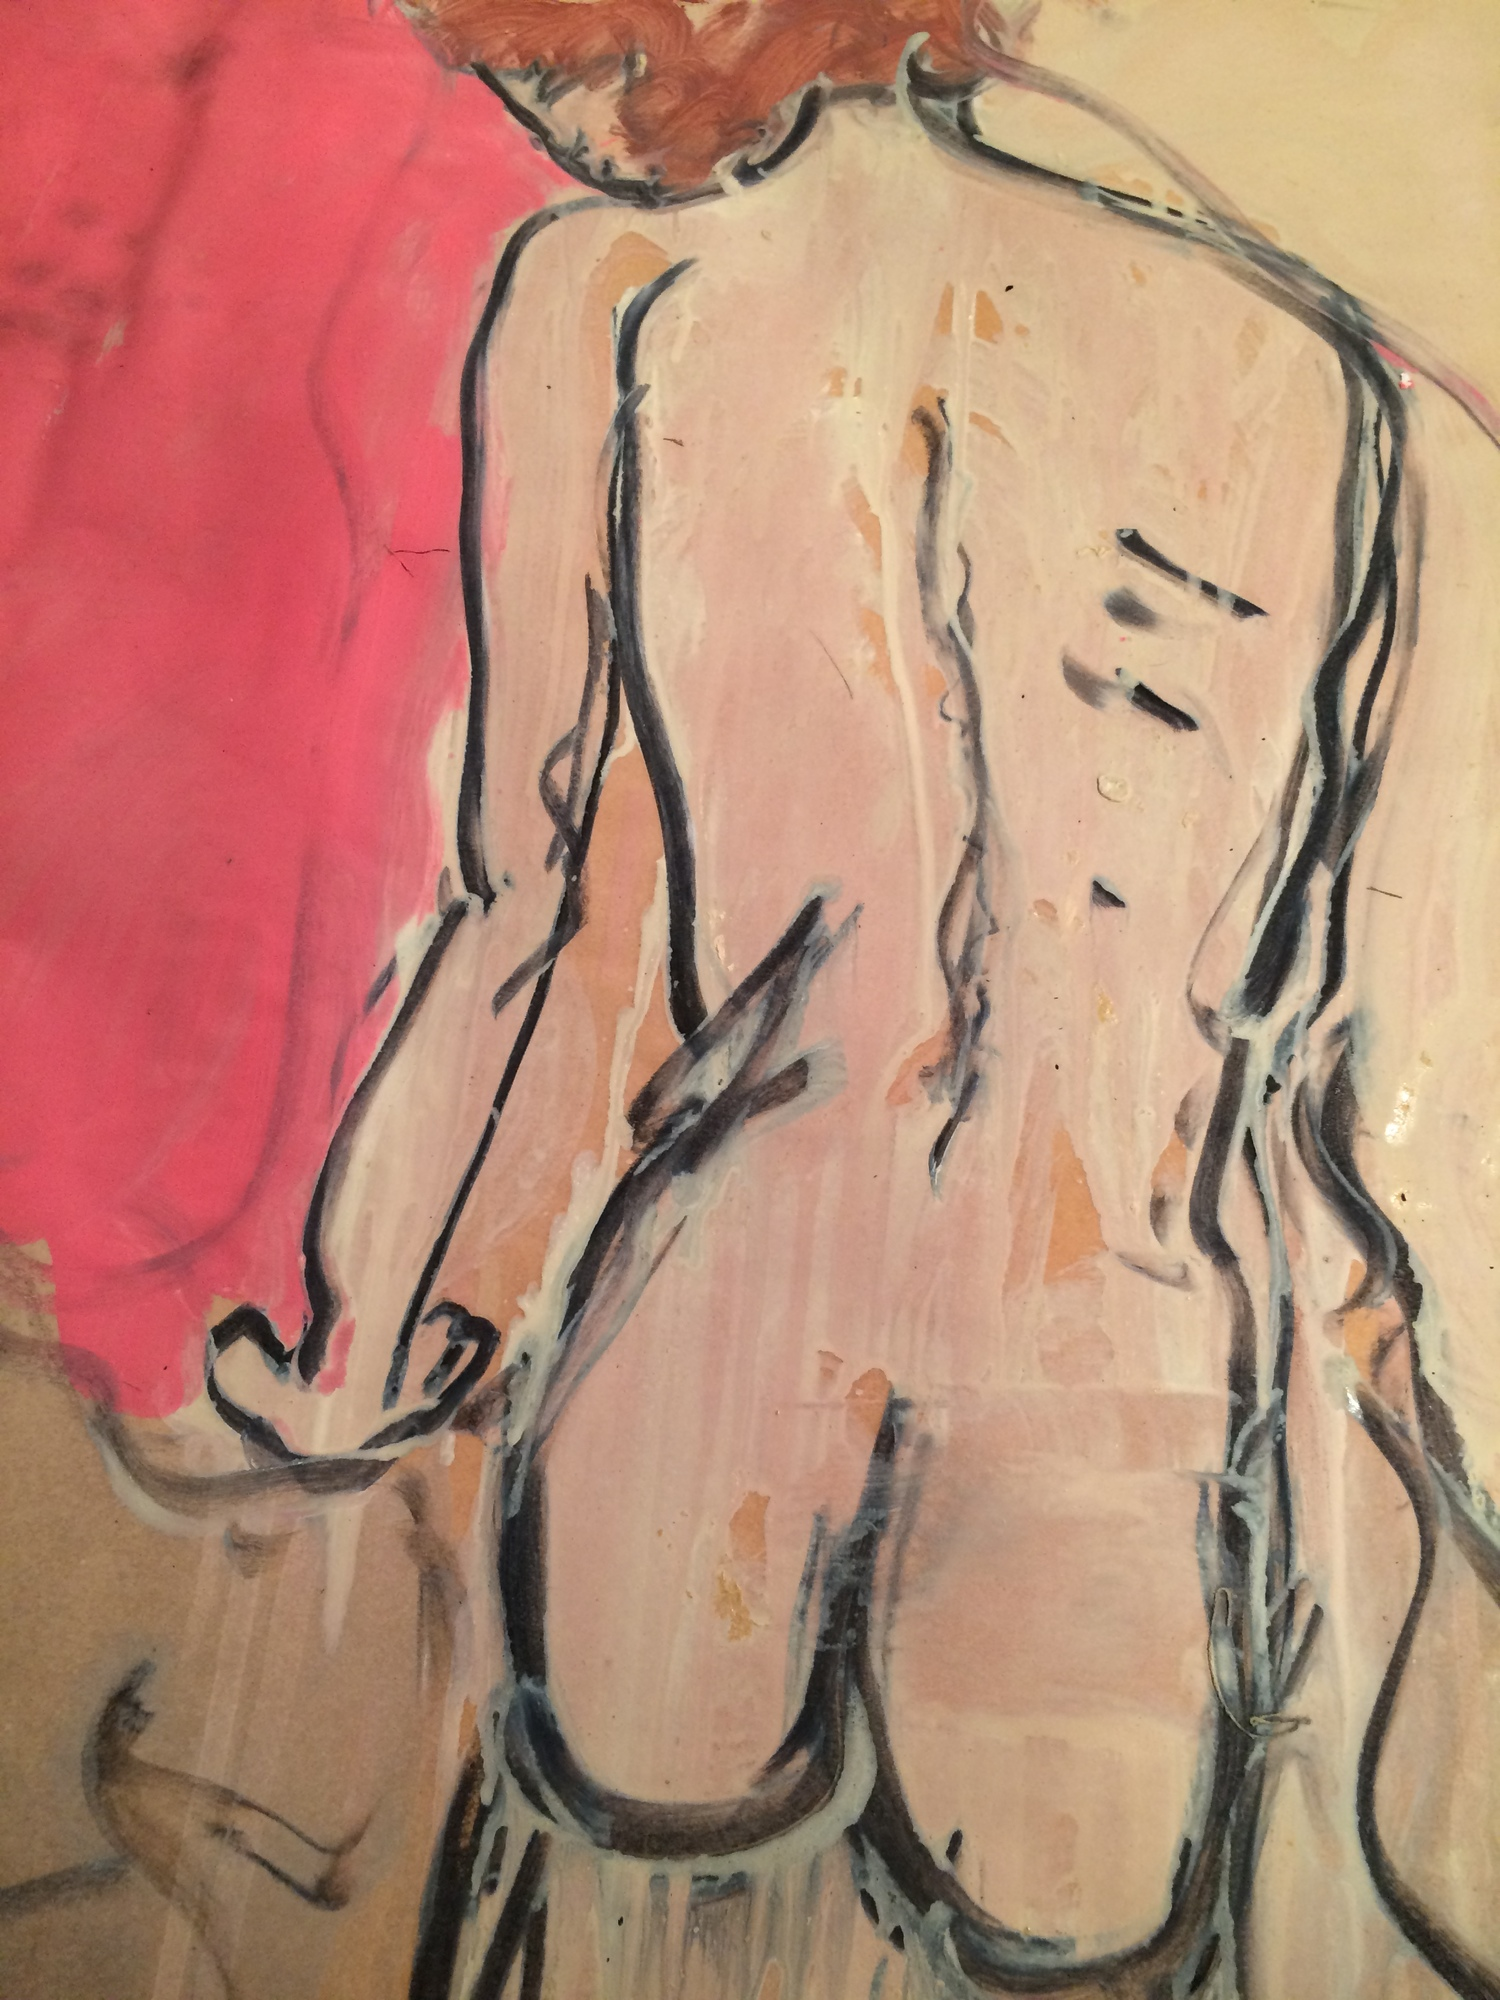 Siobhan Back - Oil/charcoal on paper 30